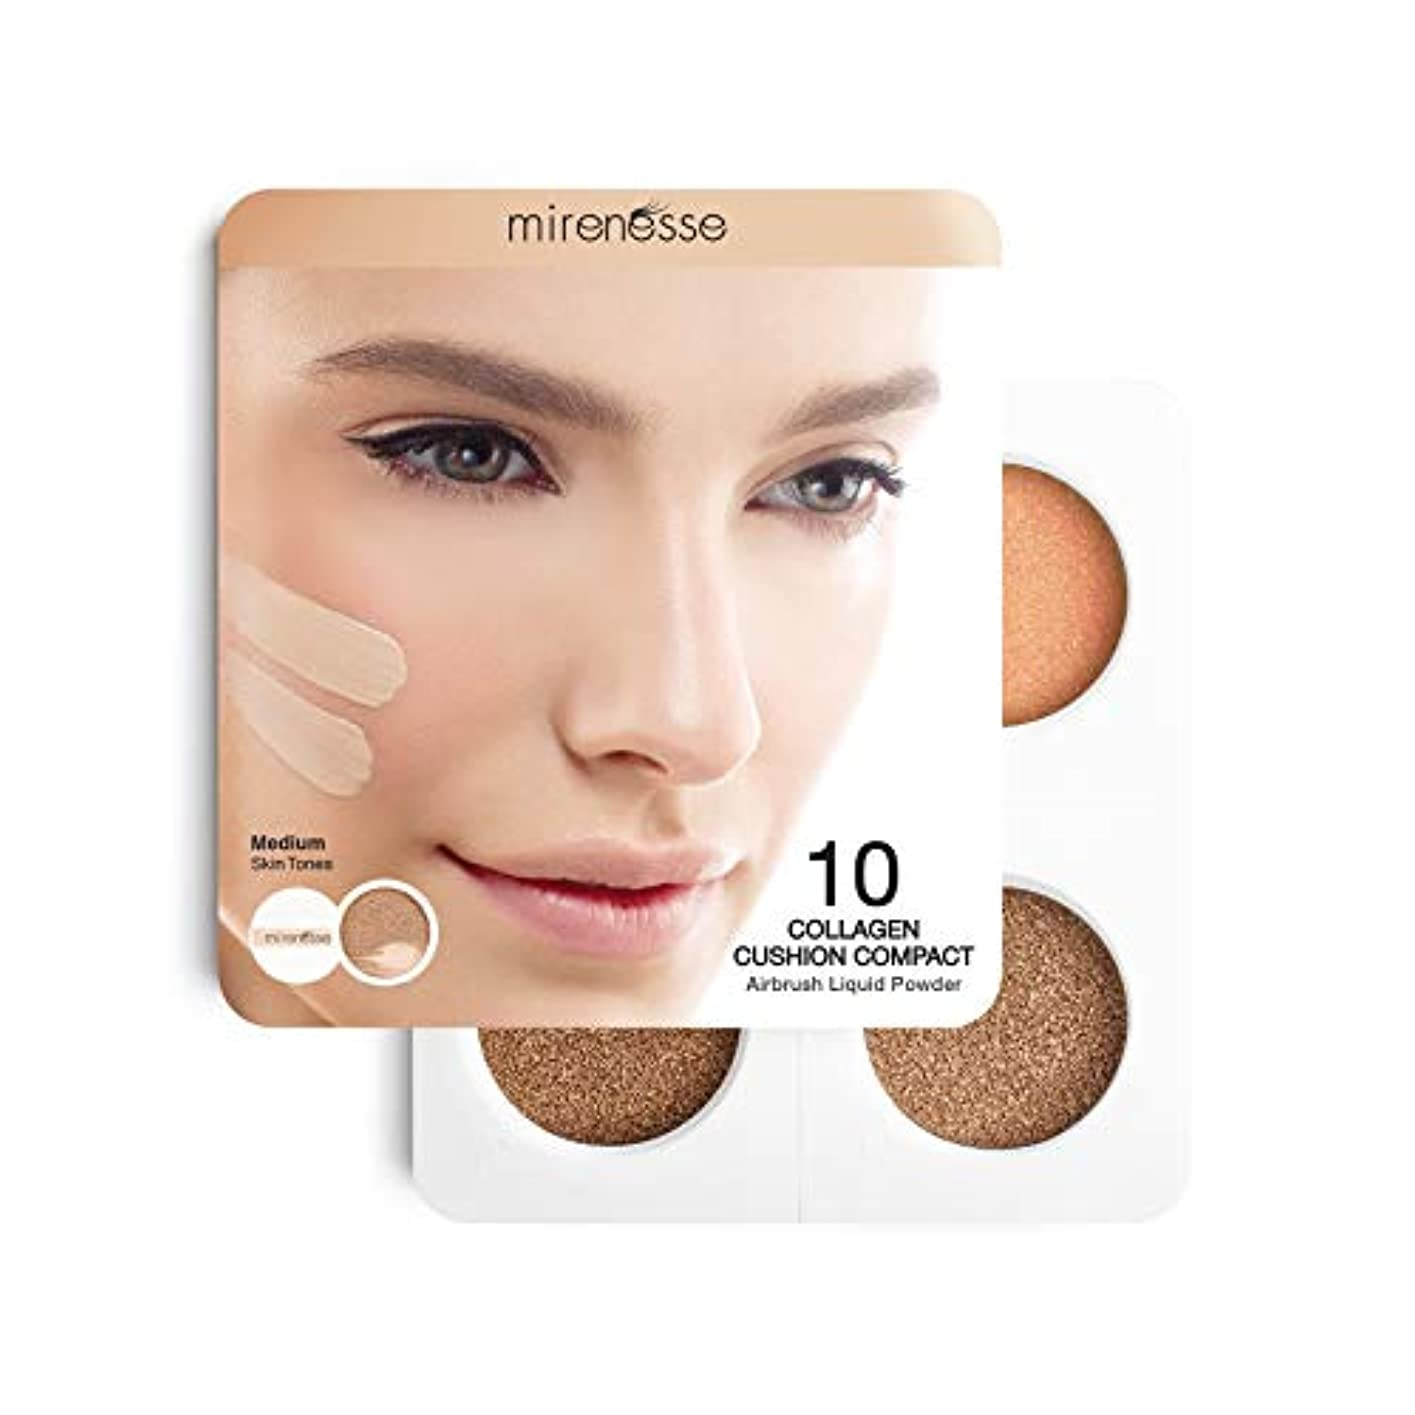 変わる法律偽造Mirenesse Cosmetics 4Pce 10 Collagen Cushion Foundation Sampler - Medium/Dark